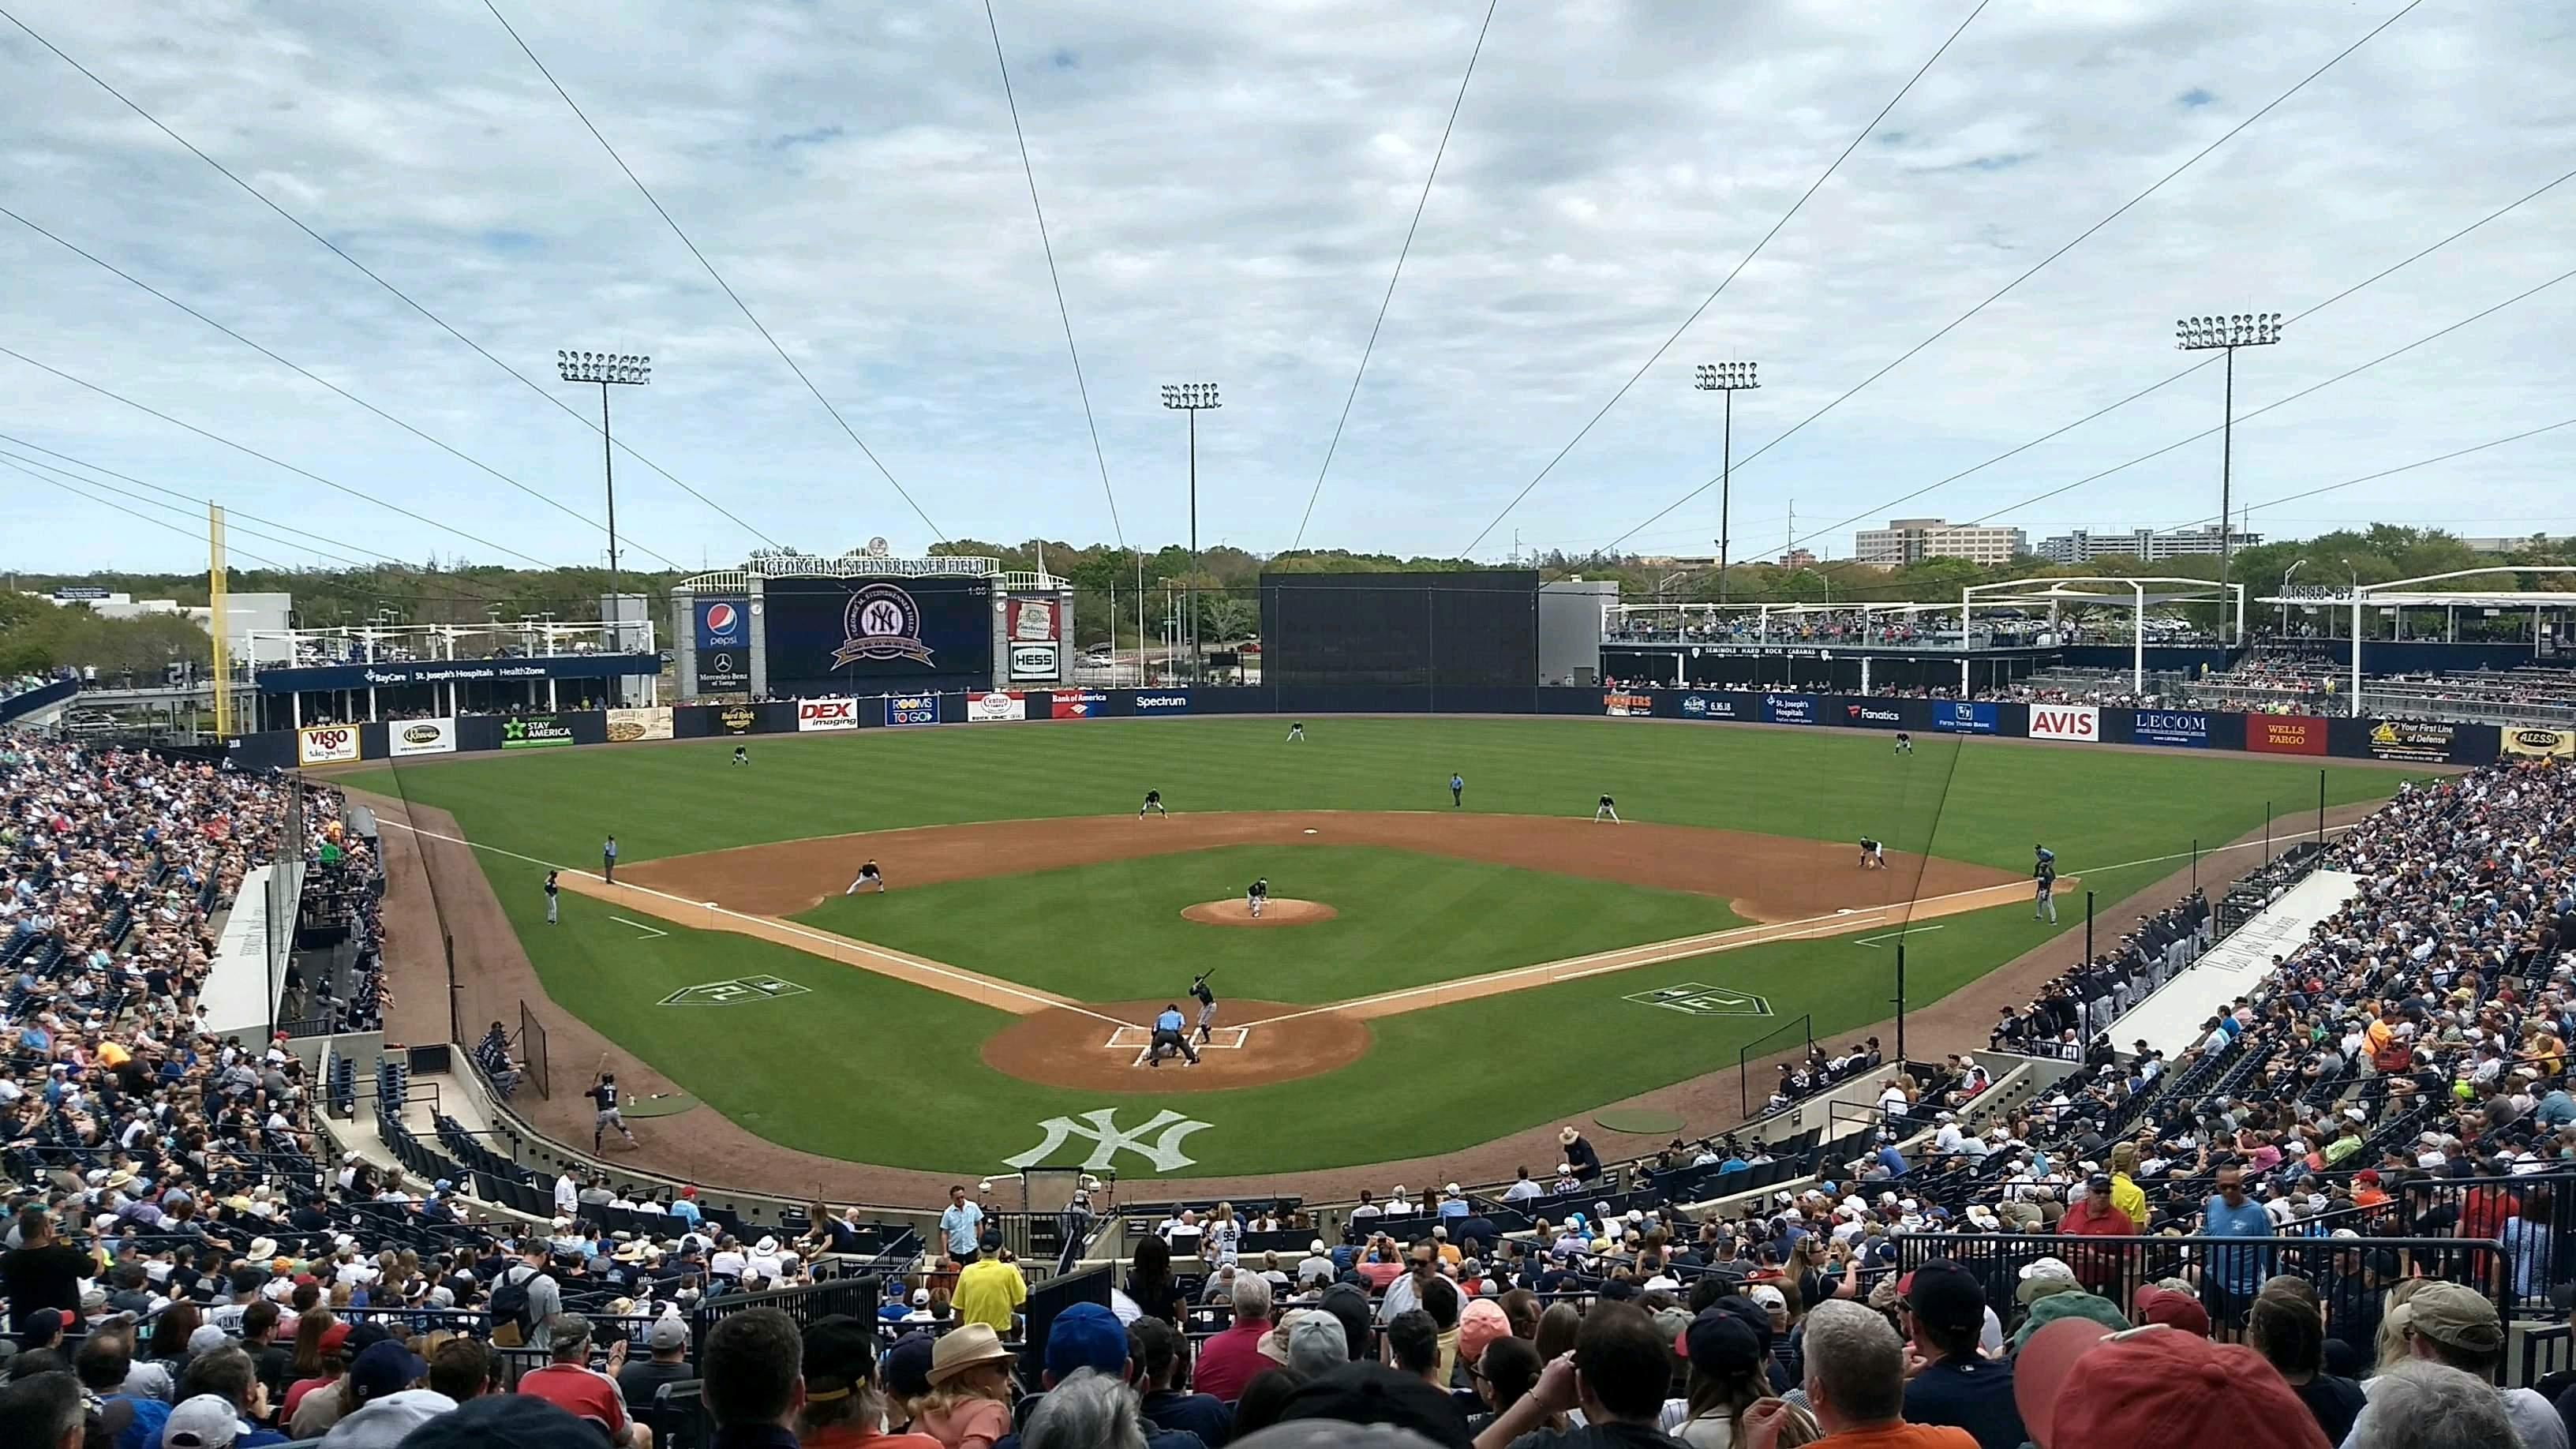 George M. Steinbrenner Field Section 210 Row O Seat 22